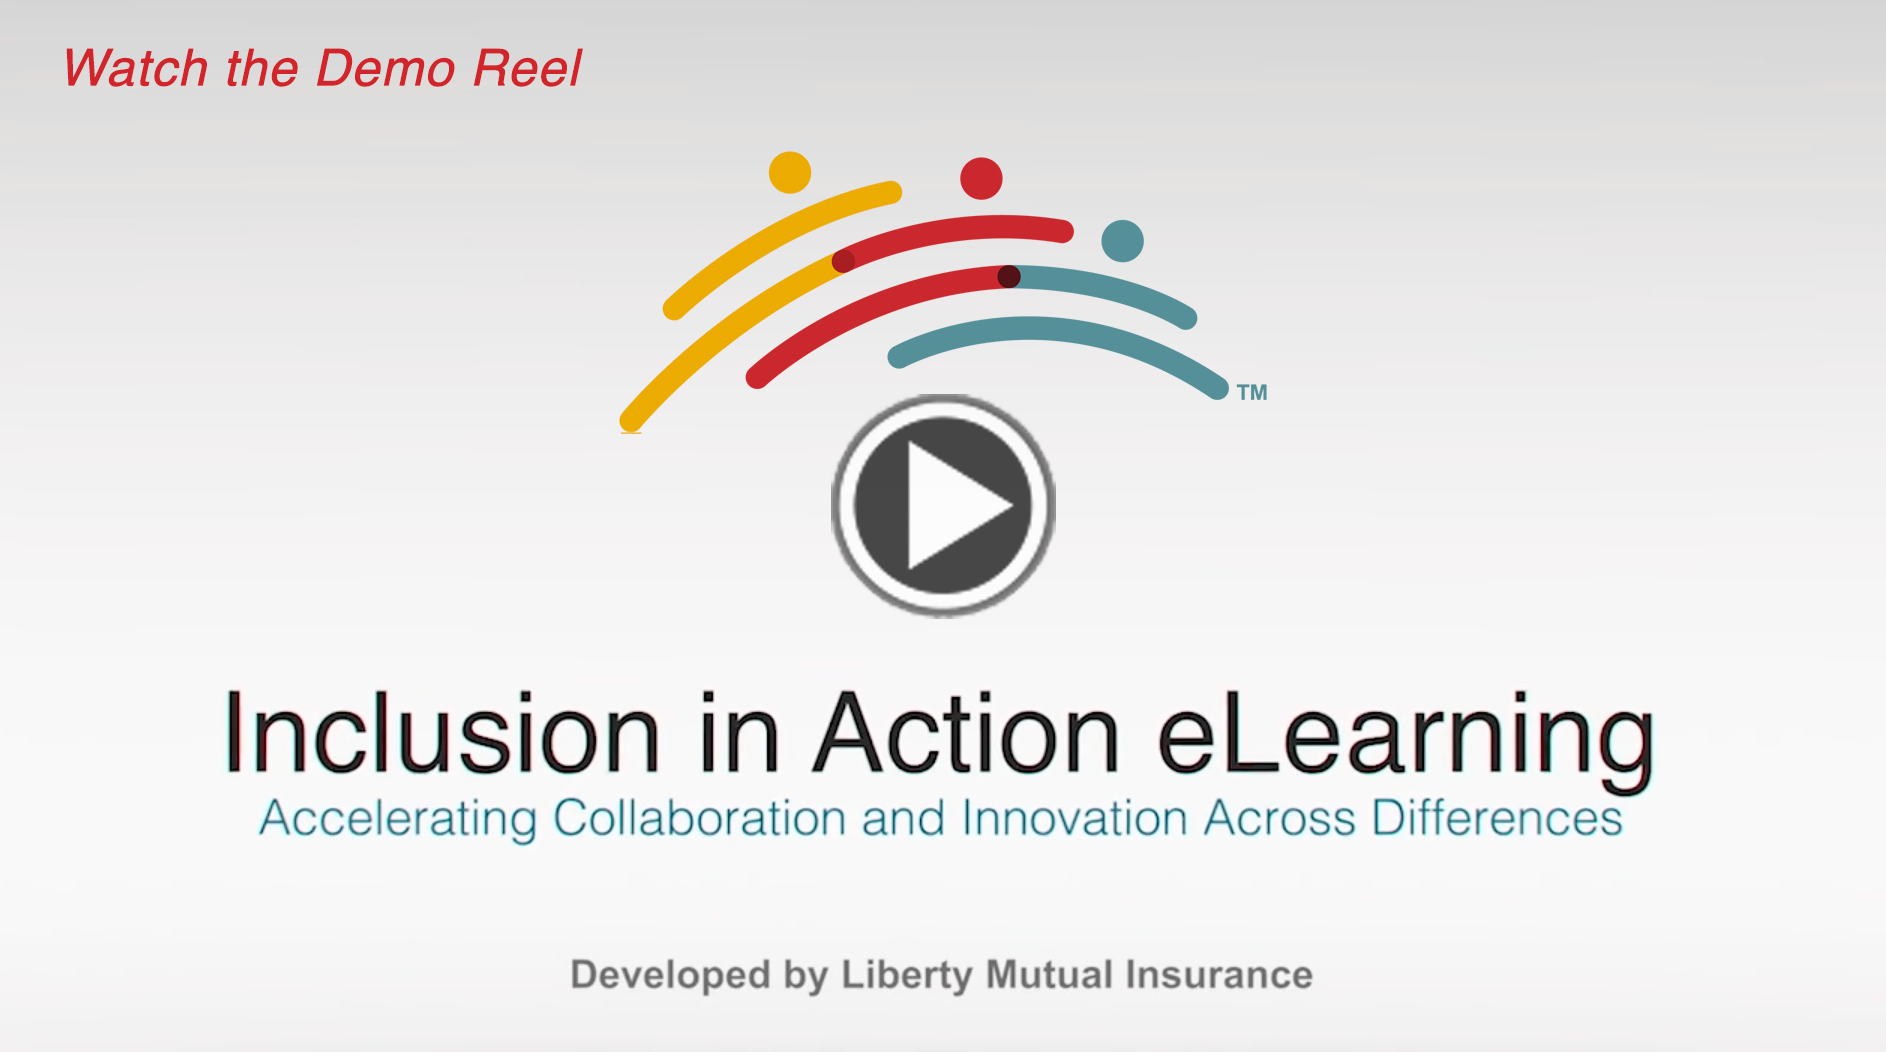 Watch the Demo Reel to learn more about the eLearning course